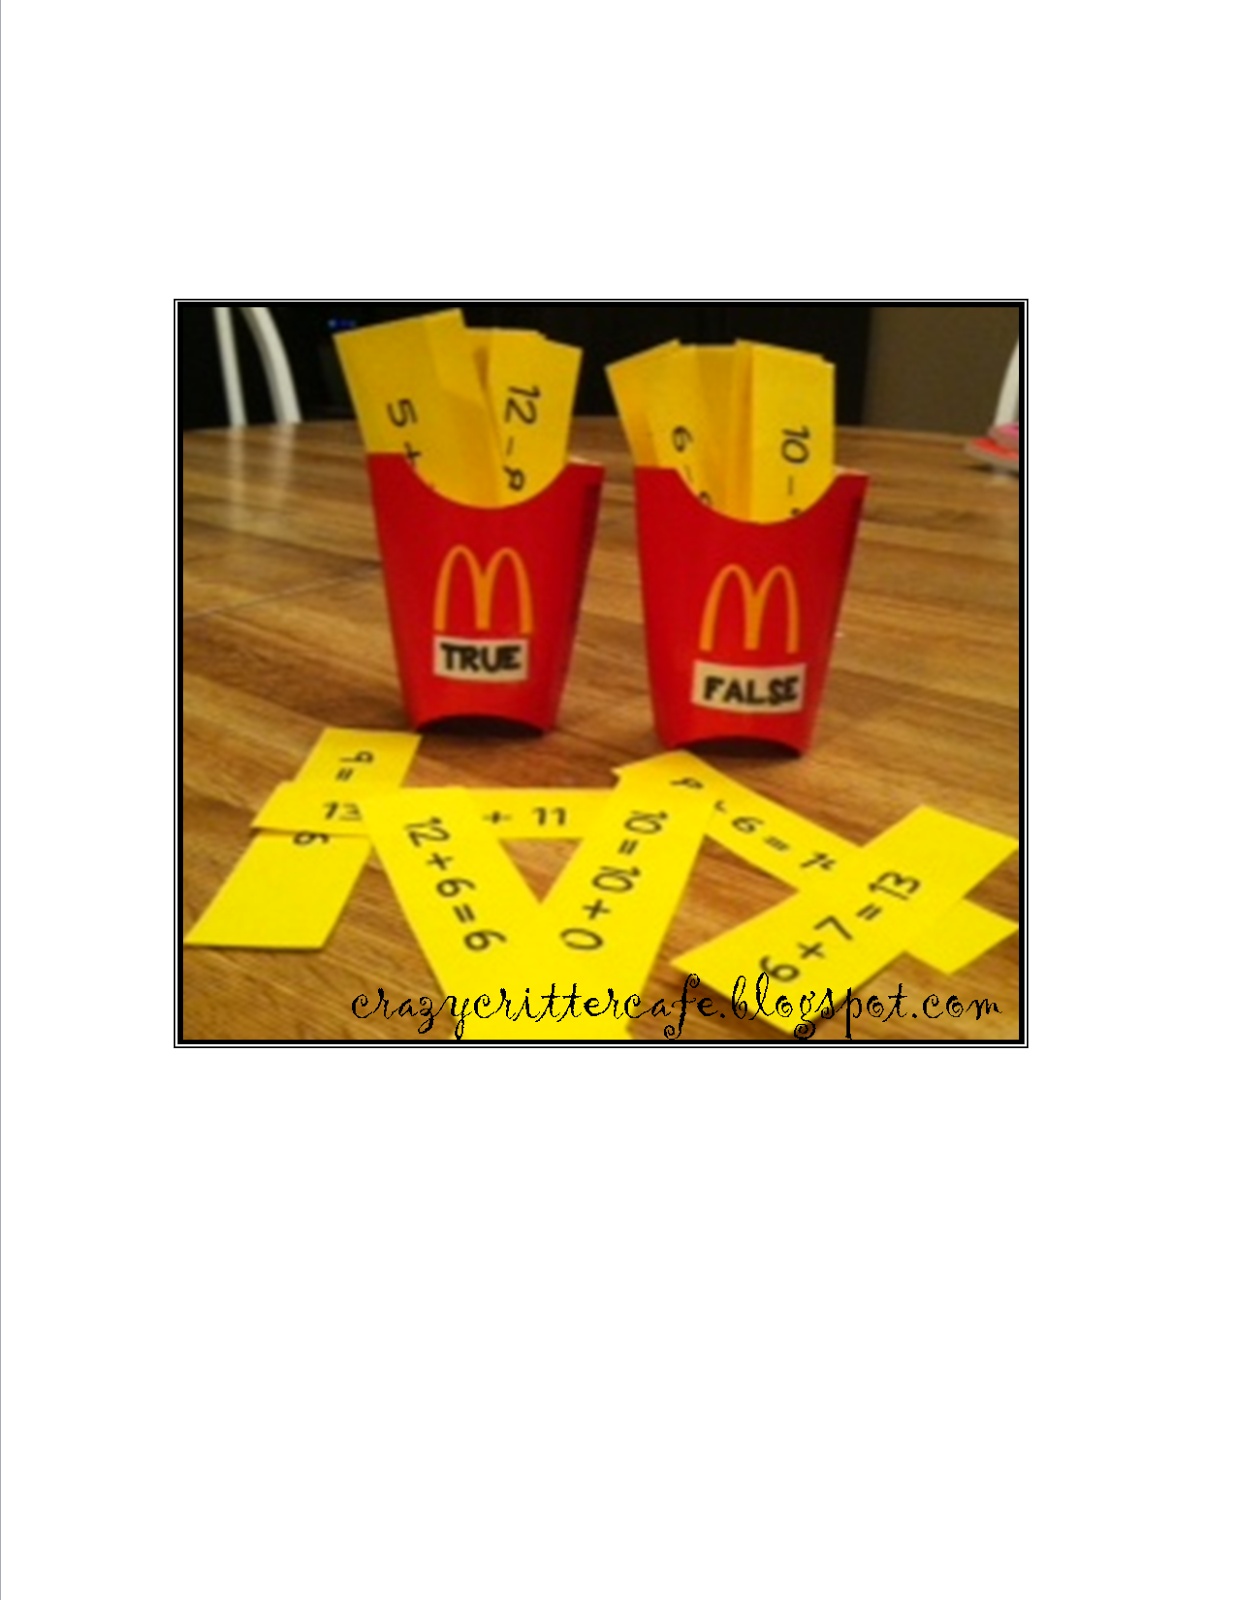 http://crazycrittercafe.blogspot.com/2014/03/math-fact-fries-and-freebies.html